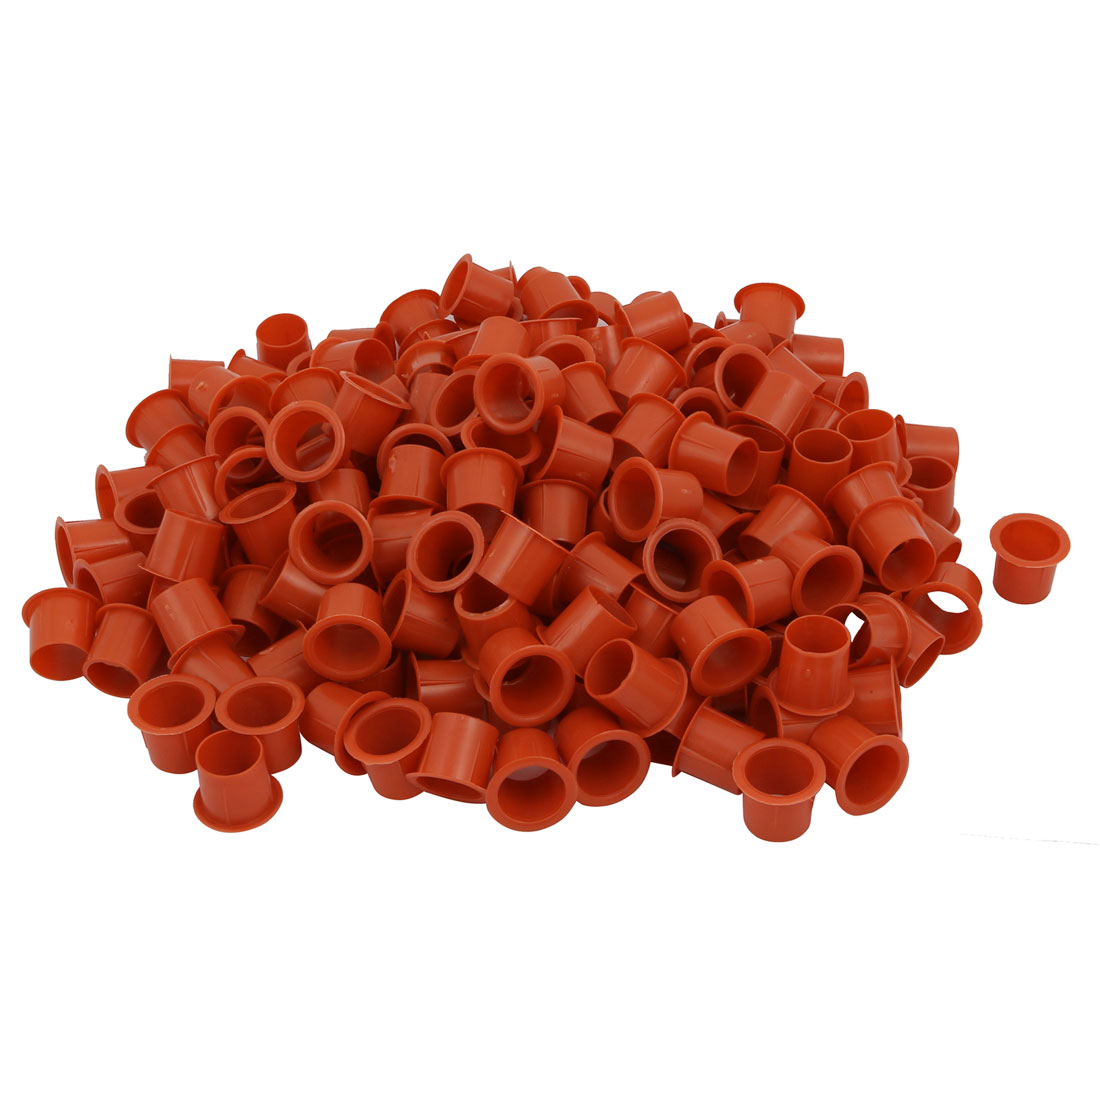 200 Pcs PVC 3/4 Inch Inner Diameter Straight Water Drainage Pipe Tube Connector